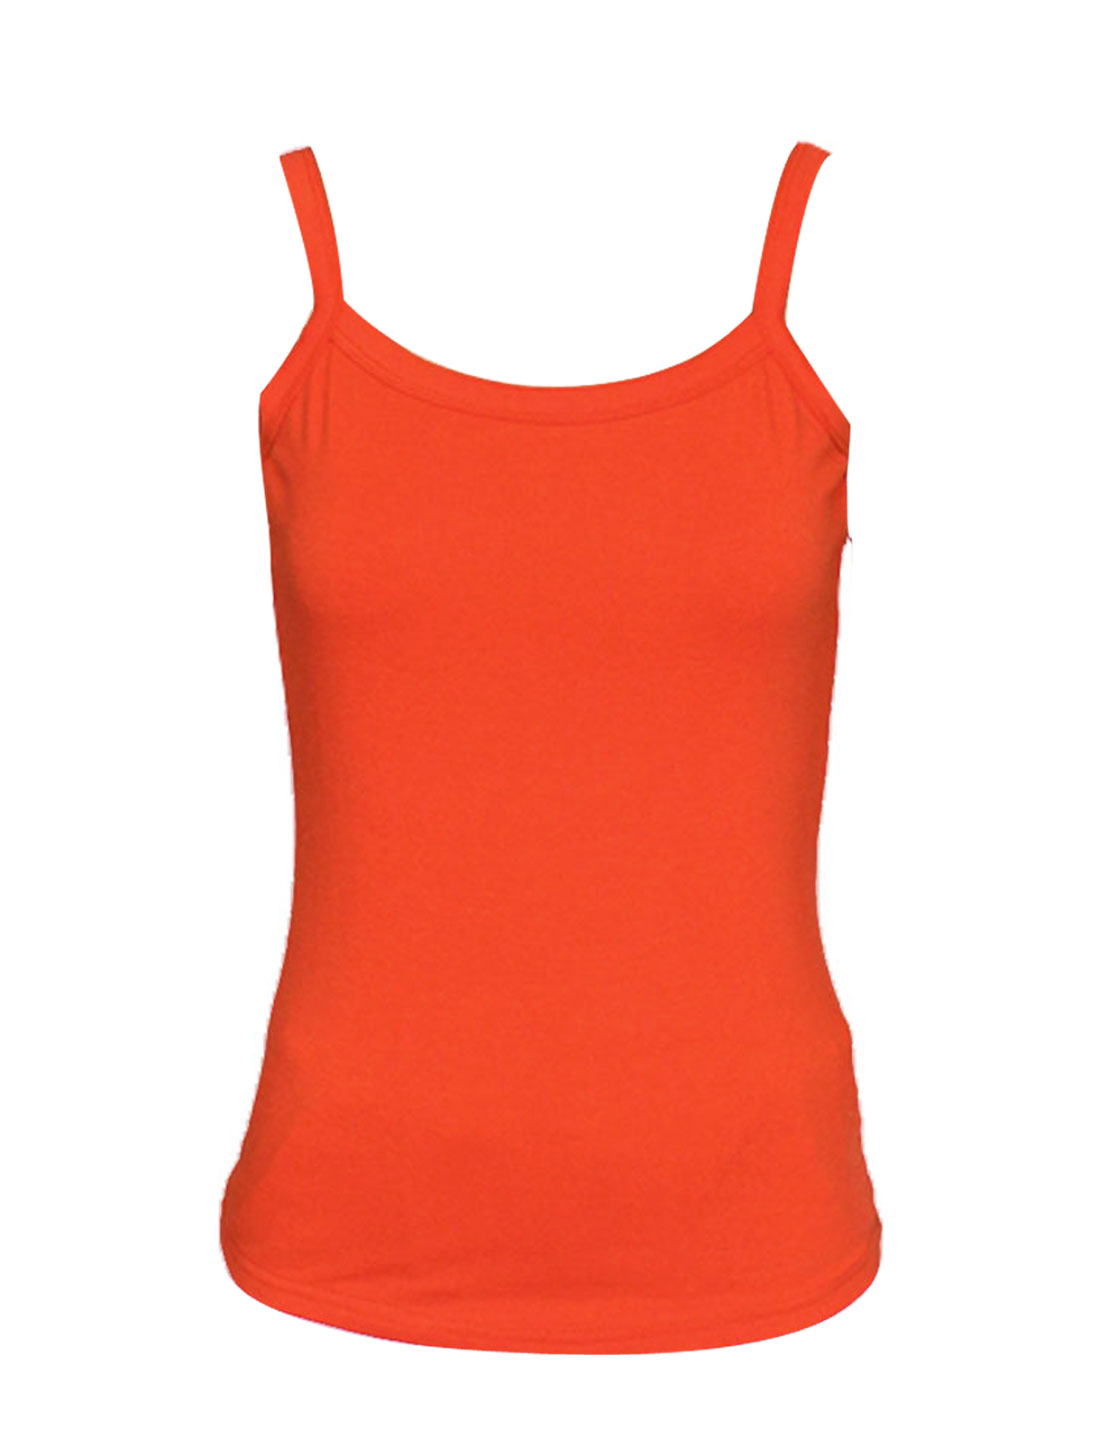 Orange Slim Strap Regular Length Stretchy Tank Top XS for Women